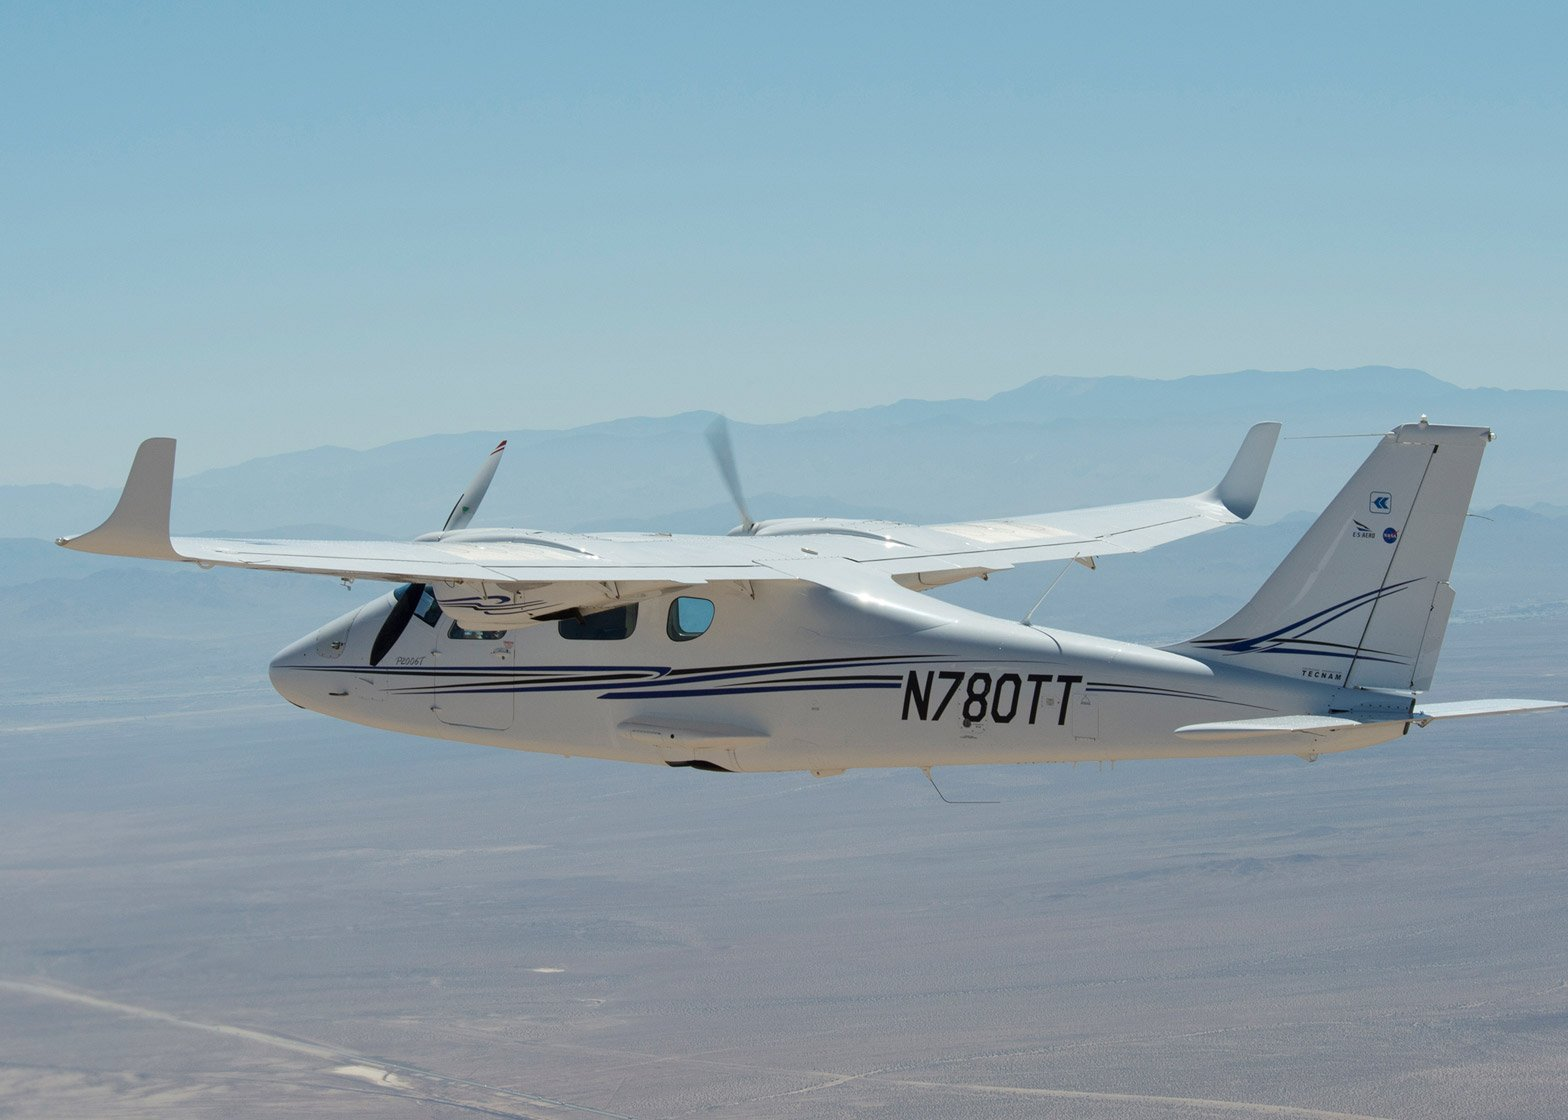 NASA unveil X 57 aircraft, an experimental electric airplane which could lead to reduced flight times and carbon emissions